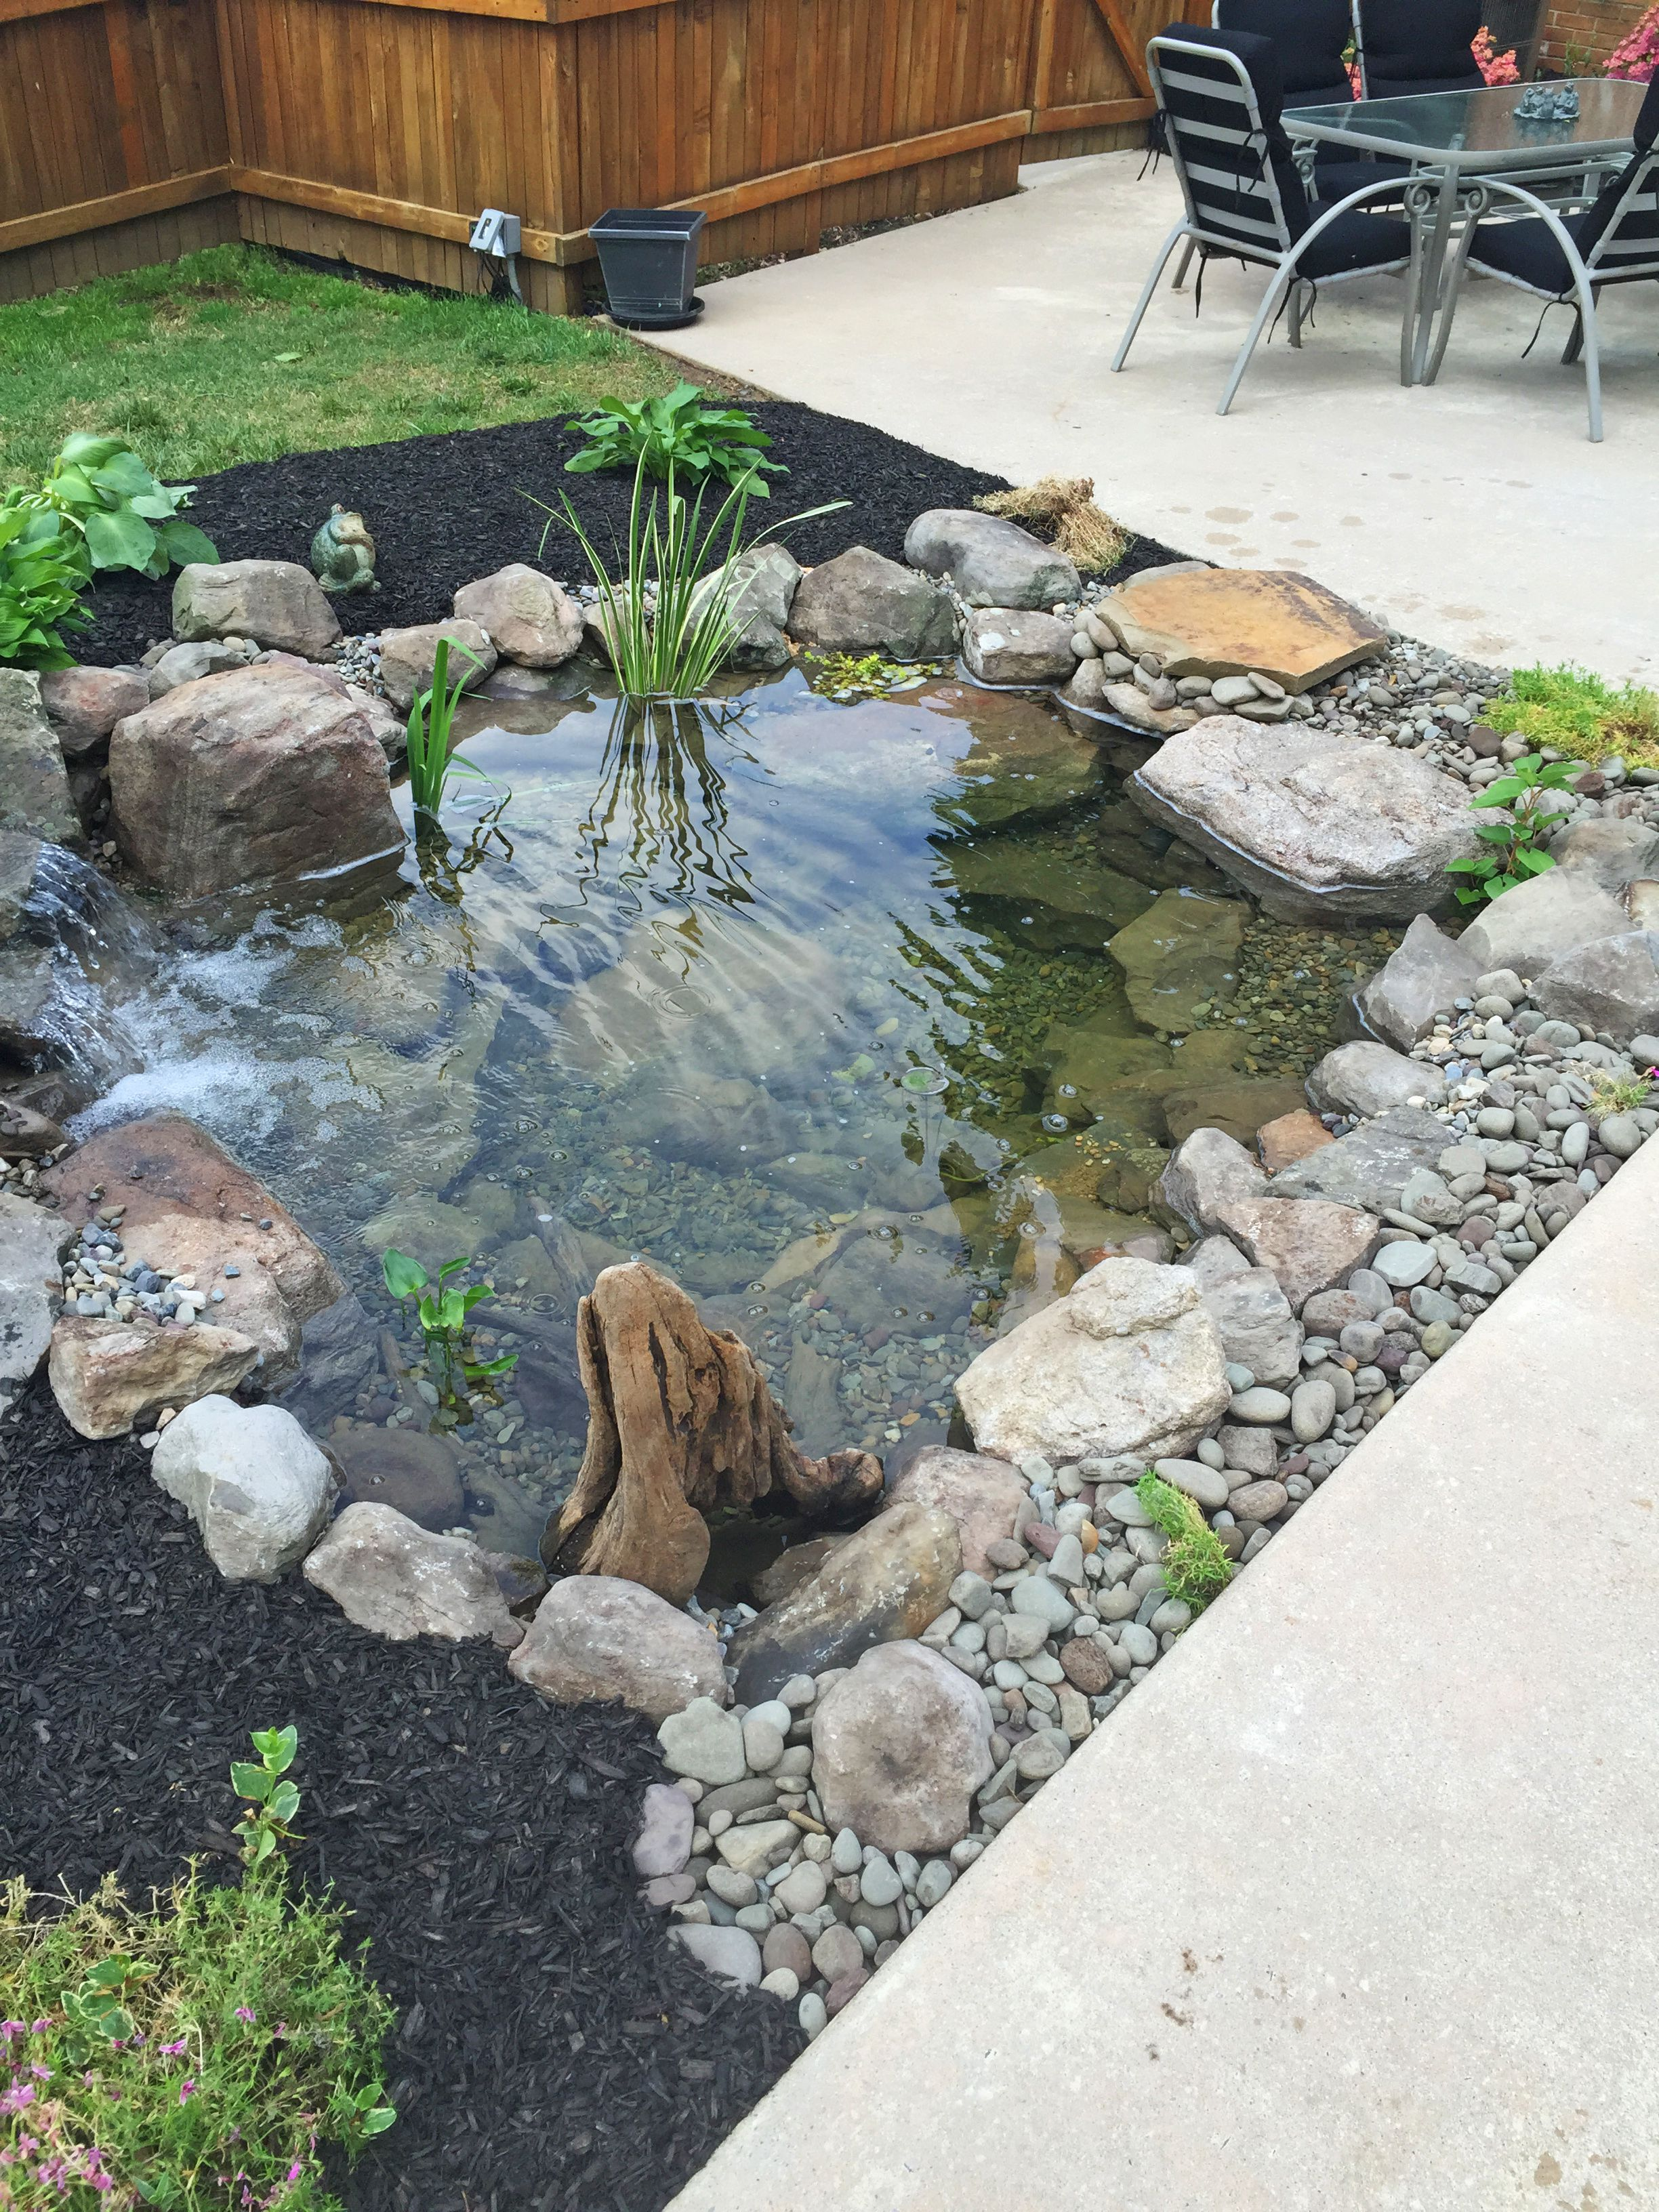 Backyard fish pond waterfall koi water garden waterscapes for Koi pond builders near me